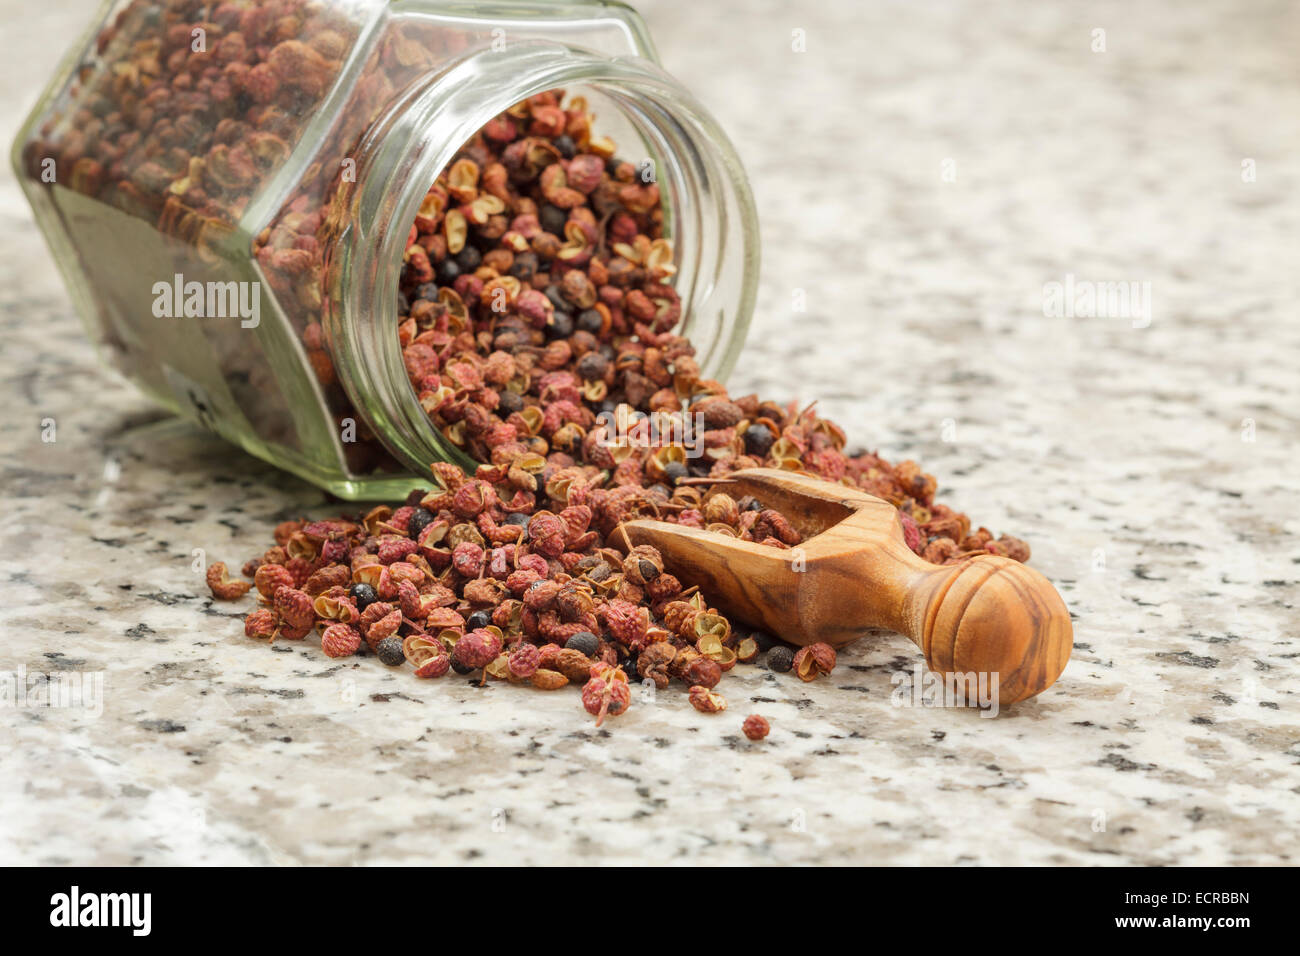 Sichuan pepper - Stock Image